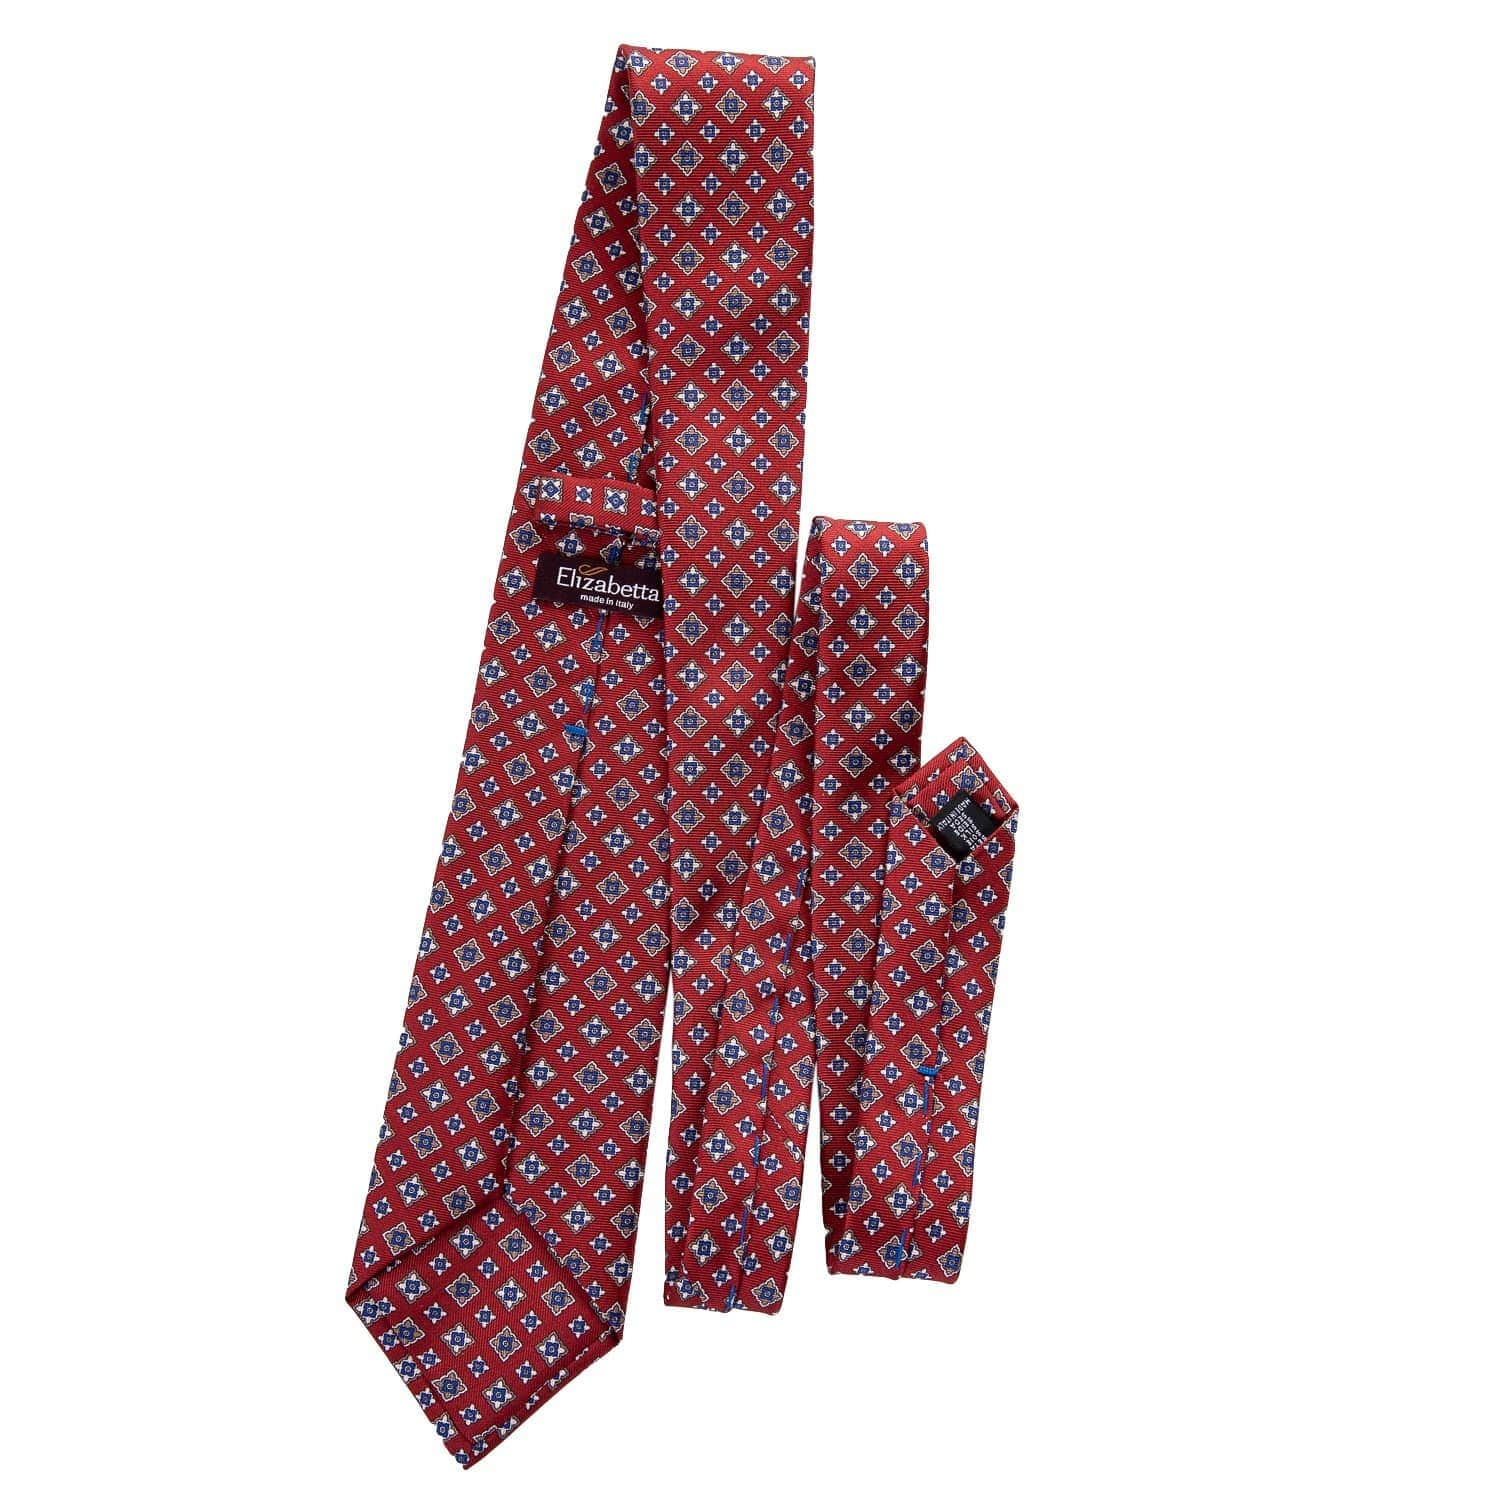 Luxury Red Silk Tie - 3 Fold - Handmade in Como Italy